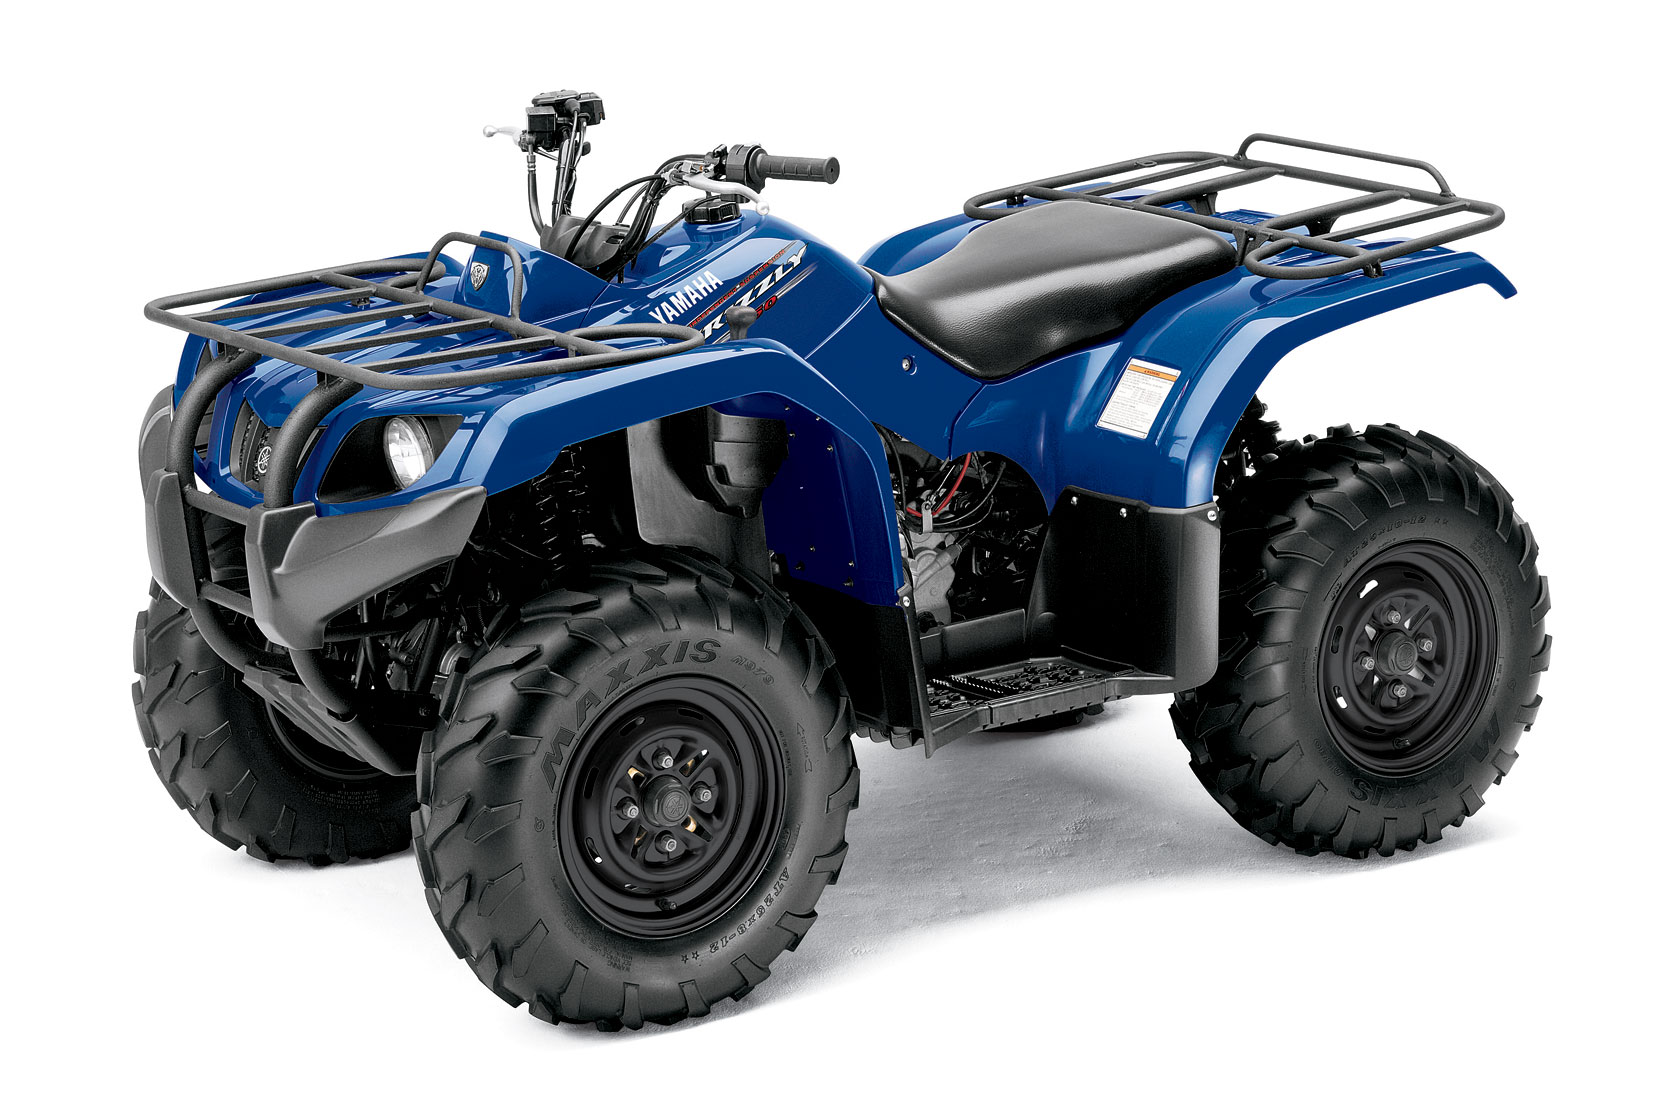 yamaha grizzly 350 4x4 irs specs 2010 2011 autoevolution